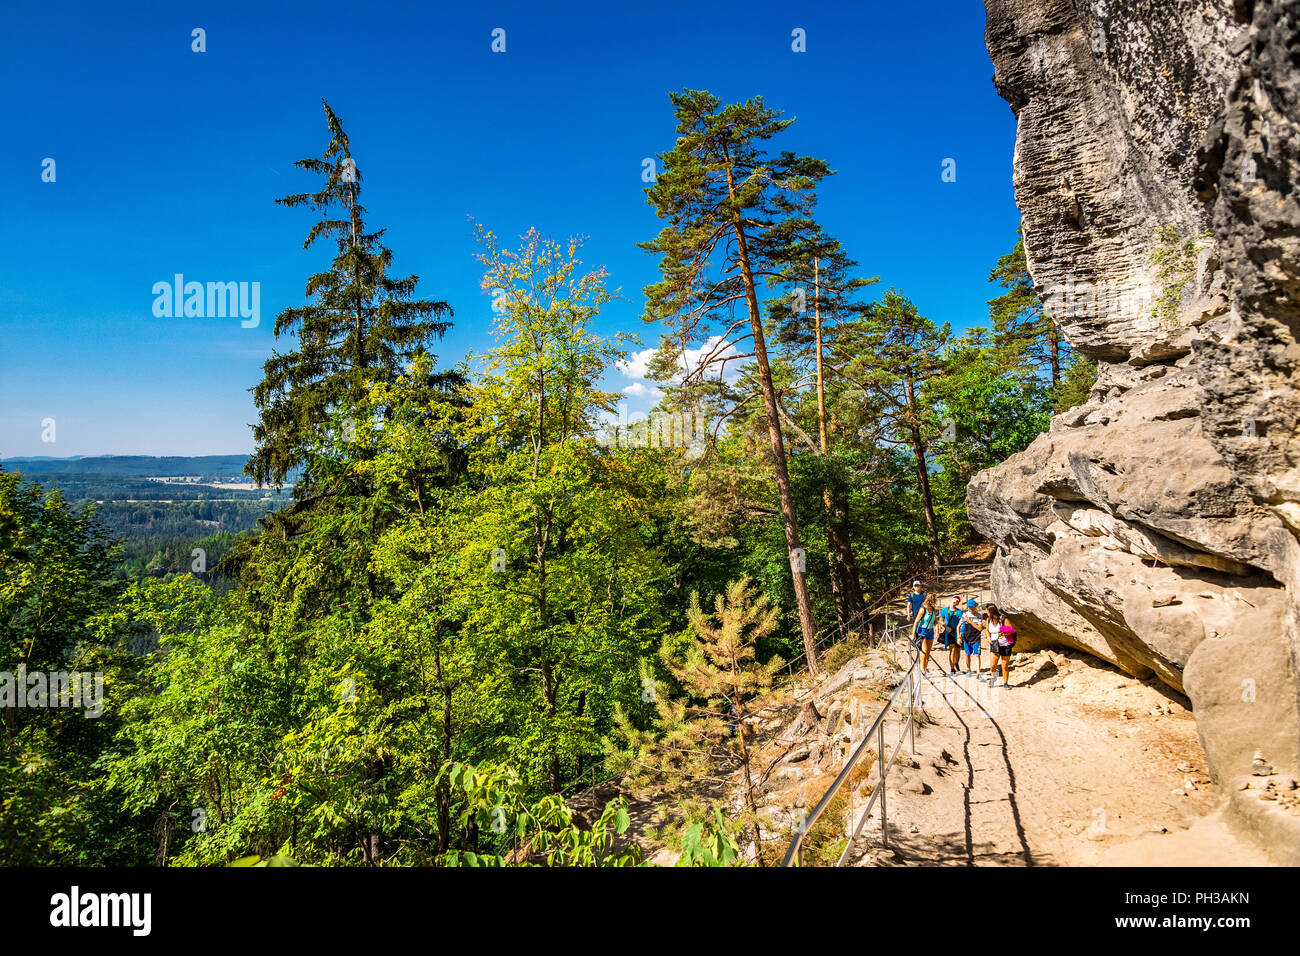 Hikers along the trail to Pravčická brána in Bohemian Switzerland, a picturesque region in the north-western Czech Republic. - Stock Image